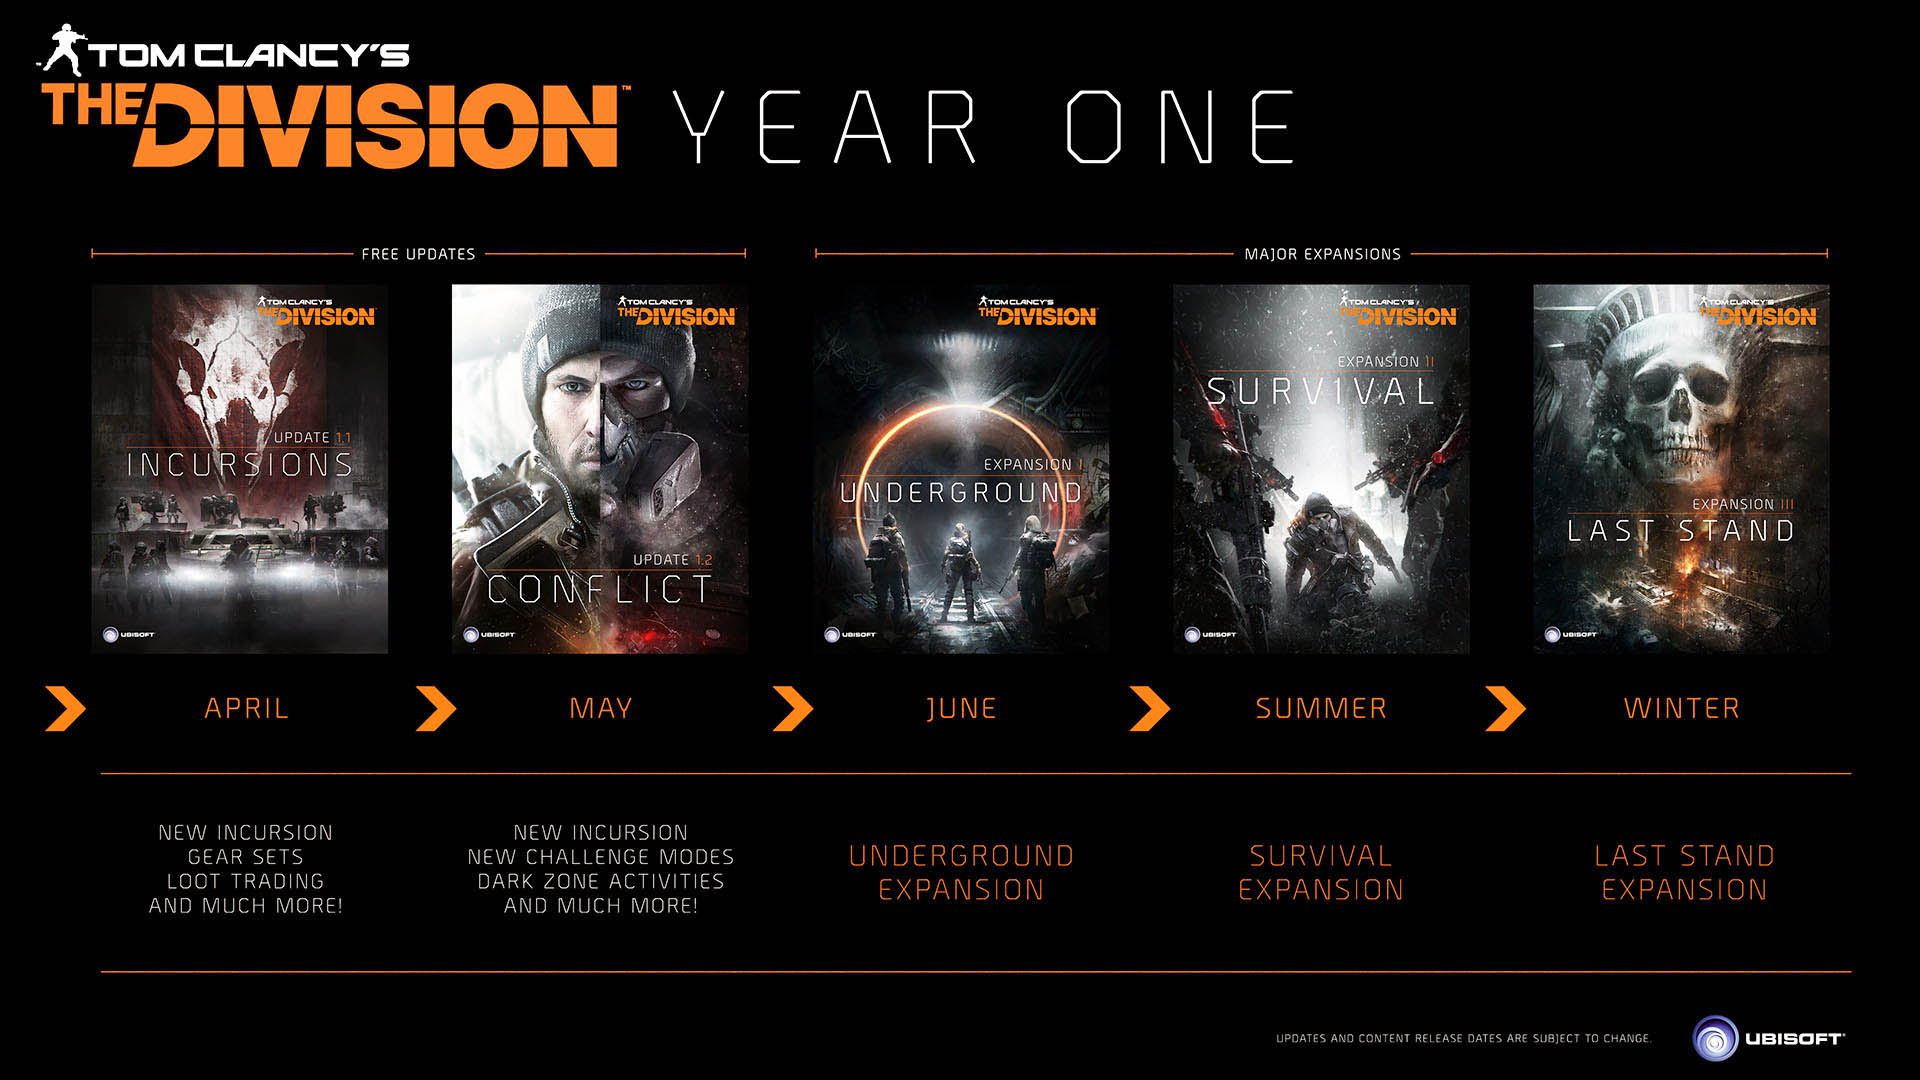 http://static9.cdn.ubi.com/resource/en-GB/game/tomclancy-thedivision/game/postlaunch_web_241890.jpg